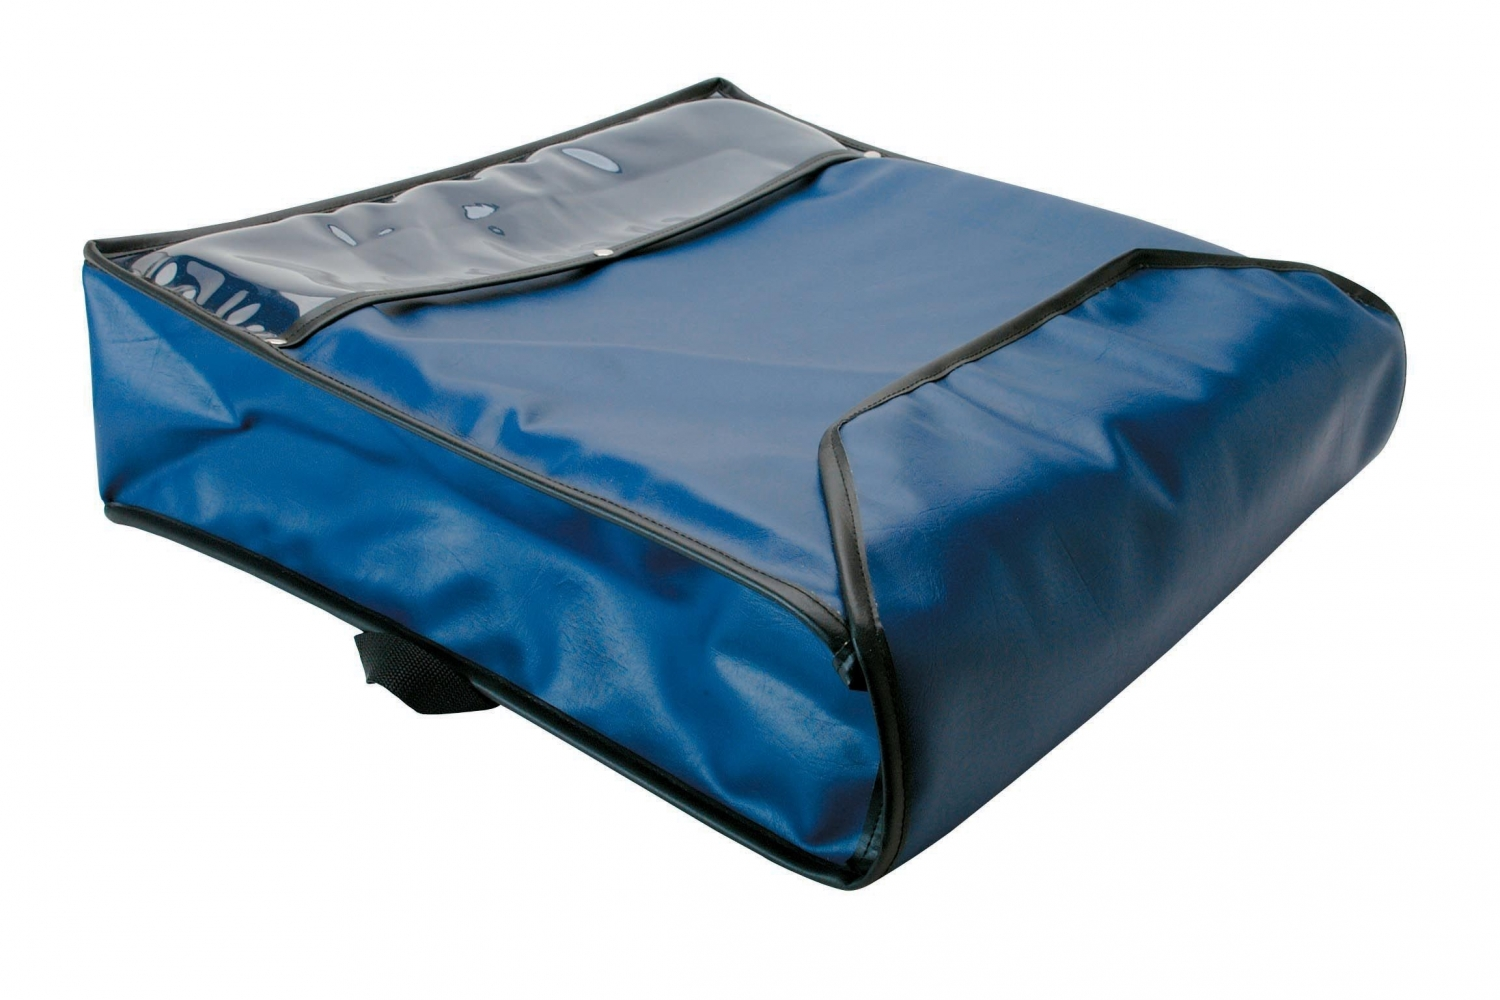 "Johnson Rose 30961 Insulated Blue Pizza Delivery Bag 18"" X 18"" X 5"""